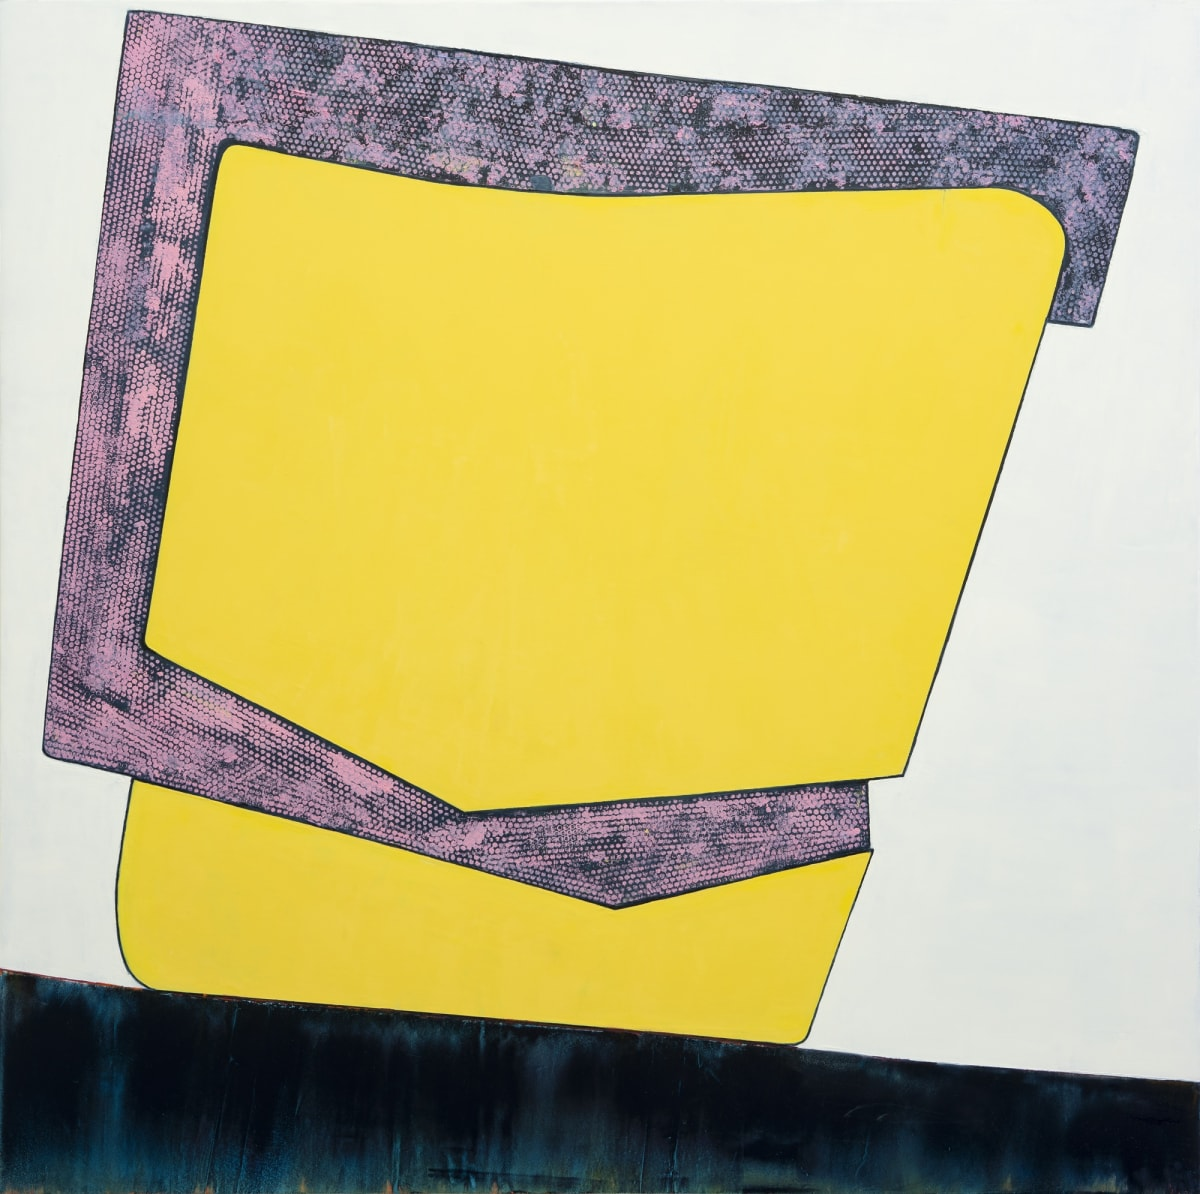 "Fran Shalom's ""Old Habits Die Hard"" oil paintings on canvas in shades of yellow, pink, gray, blue and black. This abstract painting looks like a square that has a more detailed texture attached onto another object that is a flat texture."